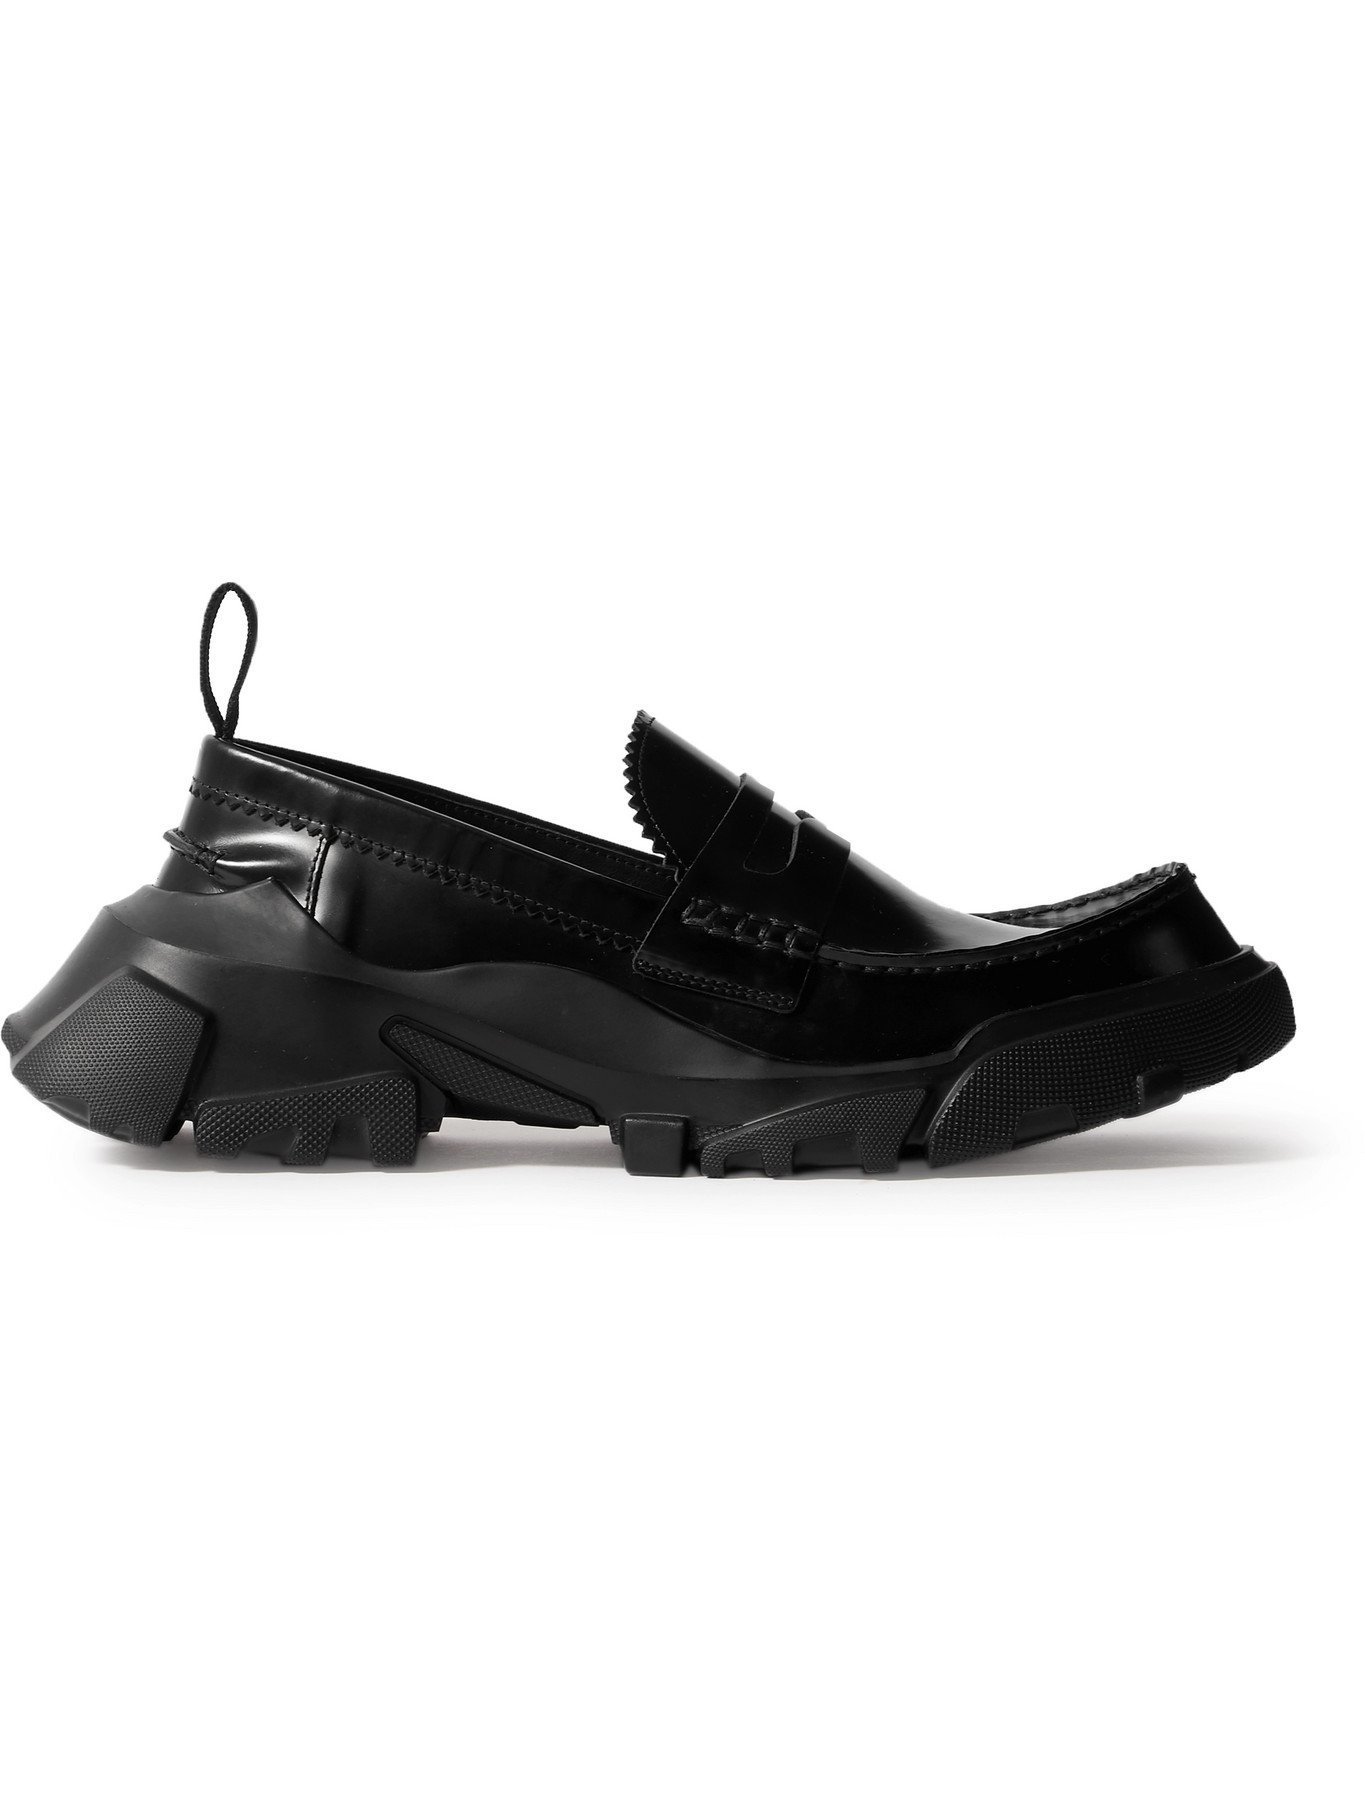 MCQ - ED6 Orbyt Leather Penny Loafers - Black